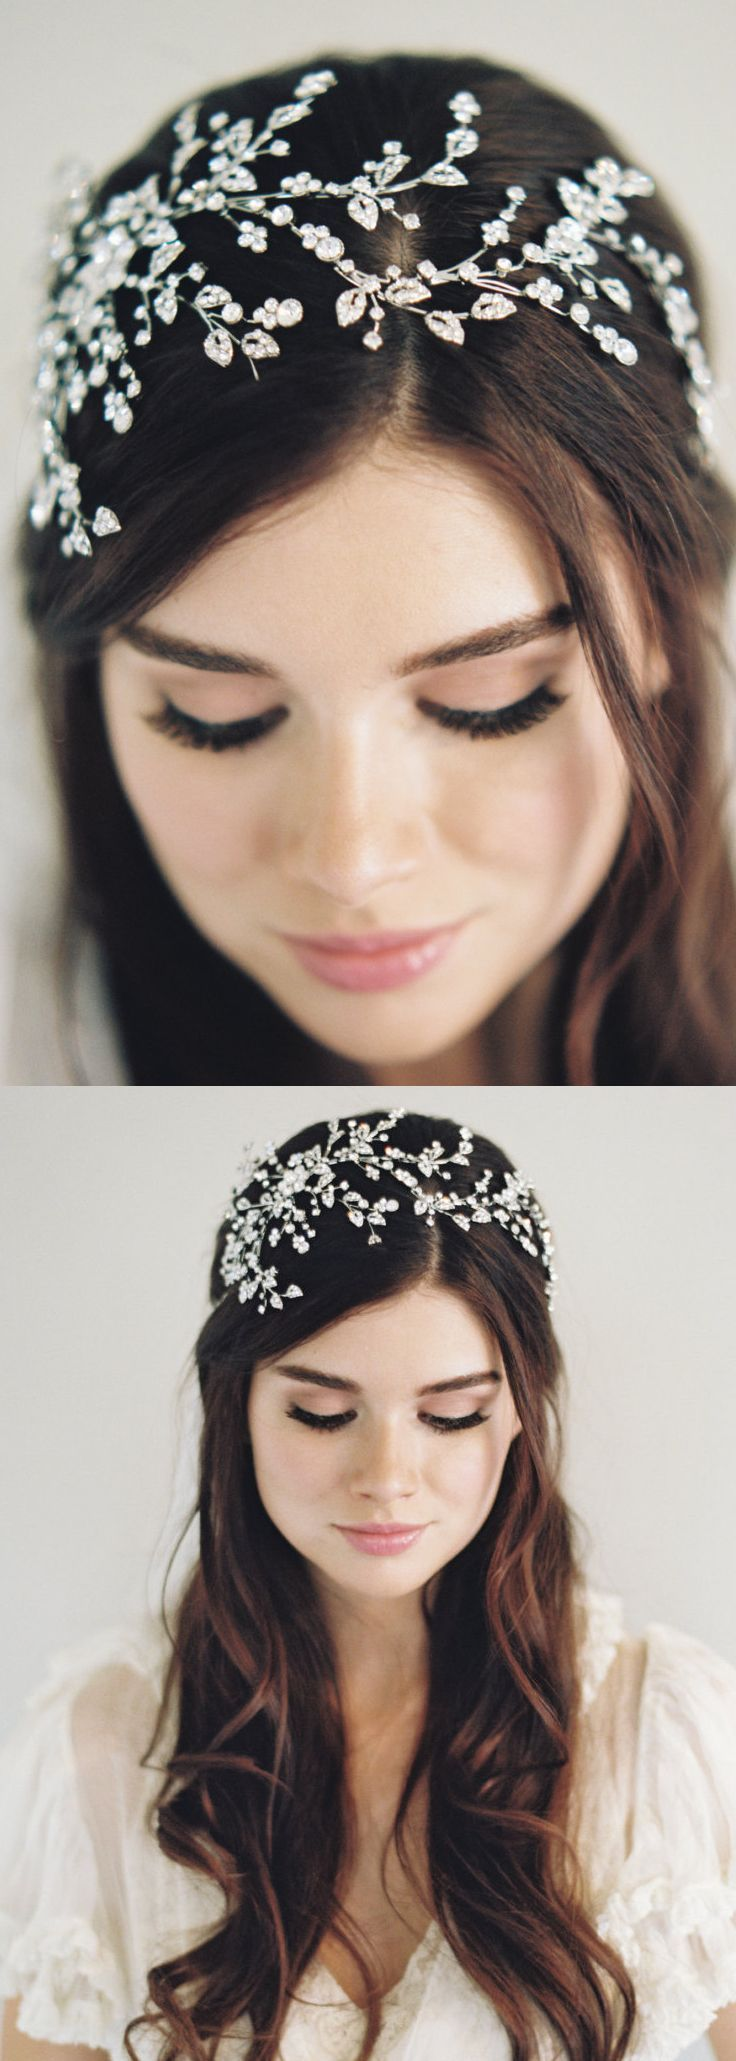 Our new boho version of tiara is beyond the cosmos. £ 133. Call it Sparks, call it Fireworks, call it Starburst, this Sword